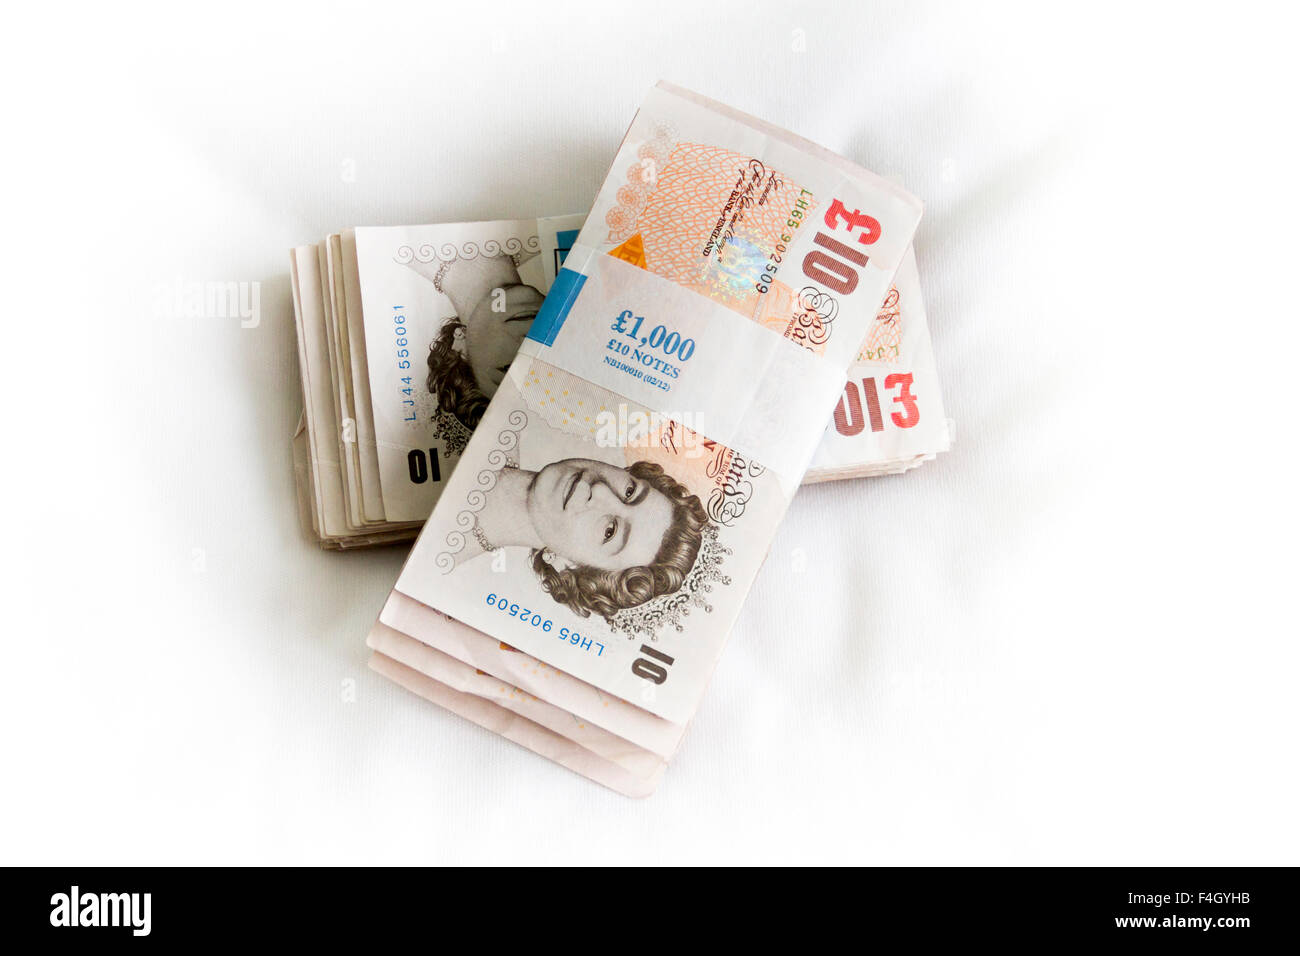 bank notes bundles stock photos bank notes bundles stock images two thousand pound bundles of ten pound notes sterling stock image